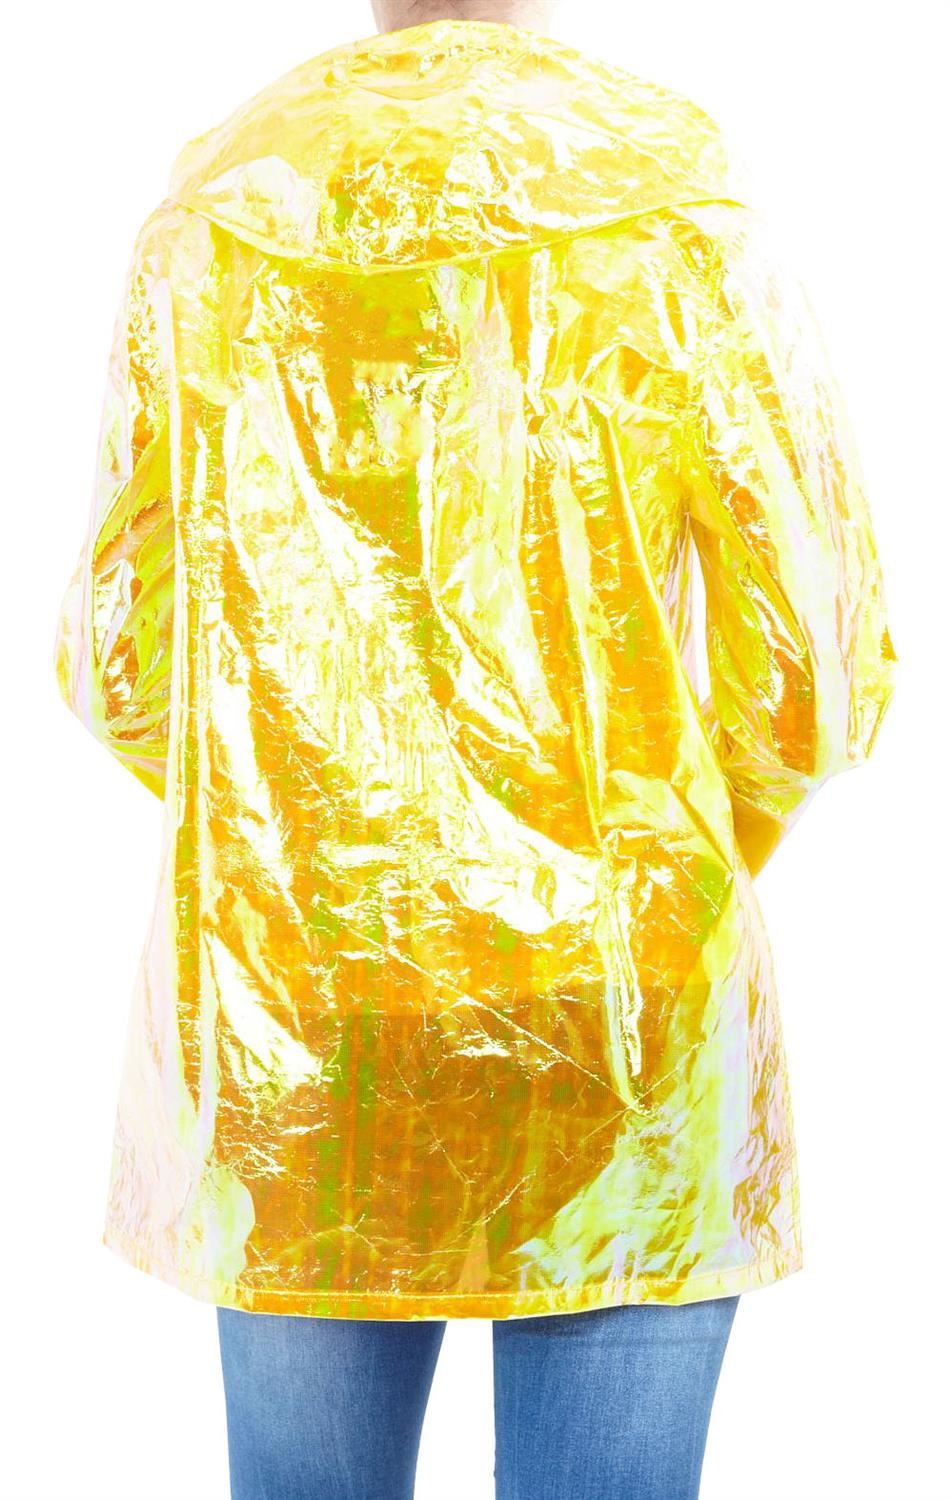 Womens-Waterproof-Holographic-Zipped-Neon-Festival-Mac-Jacket-Parka-Raincoat thumbnail 19